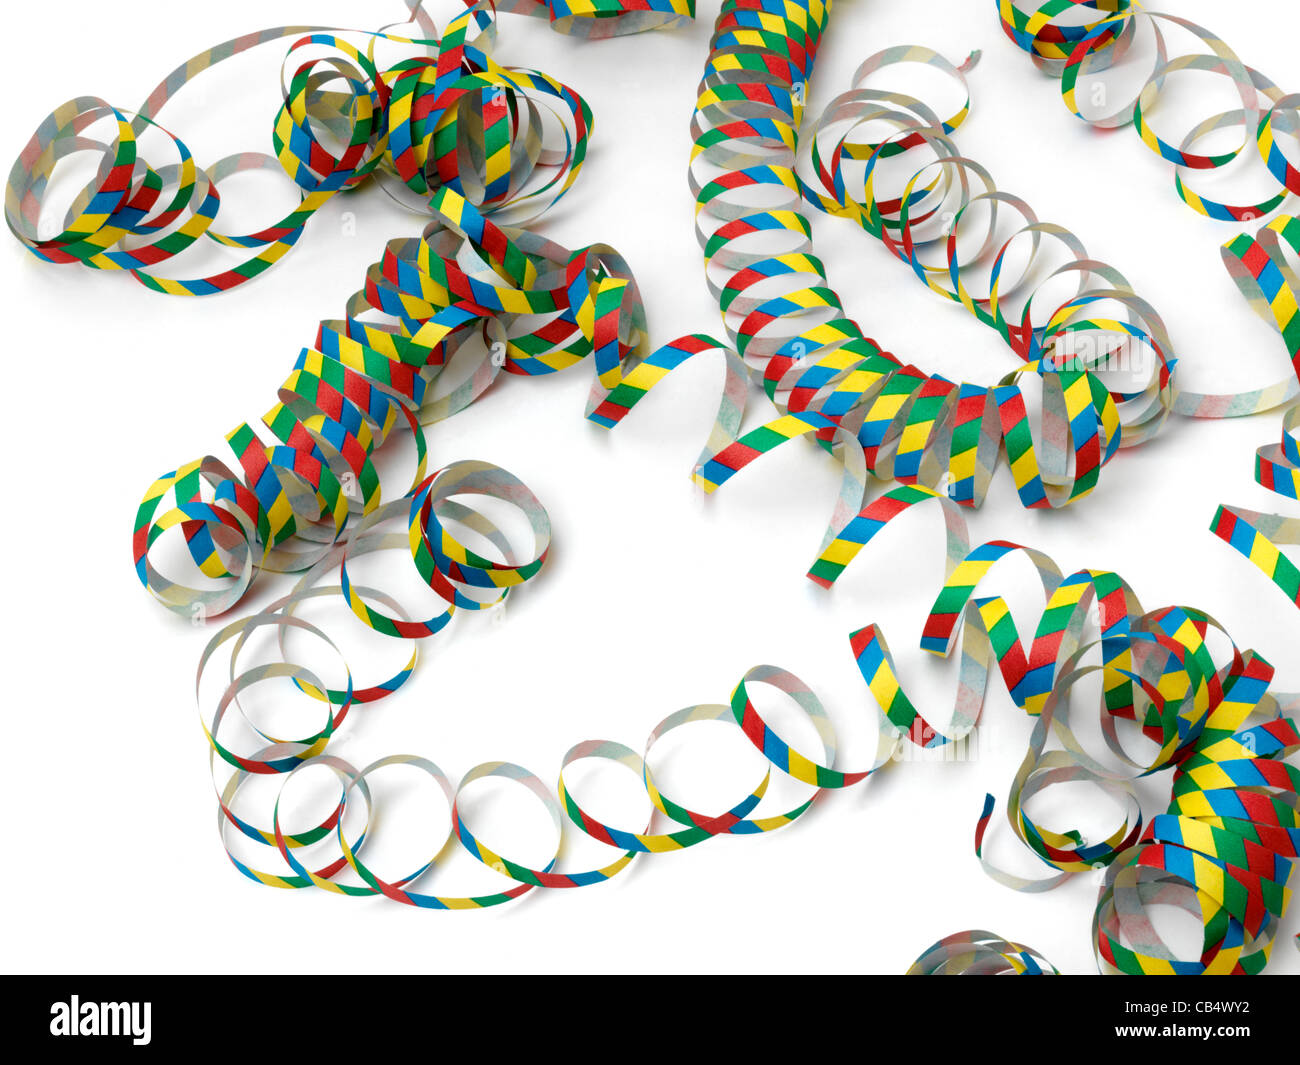 Colourful Streamers - Stock Image